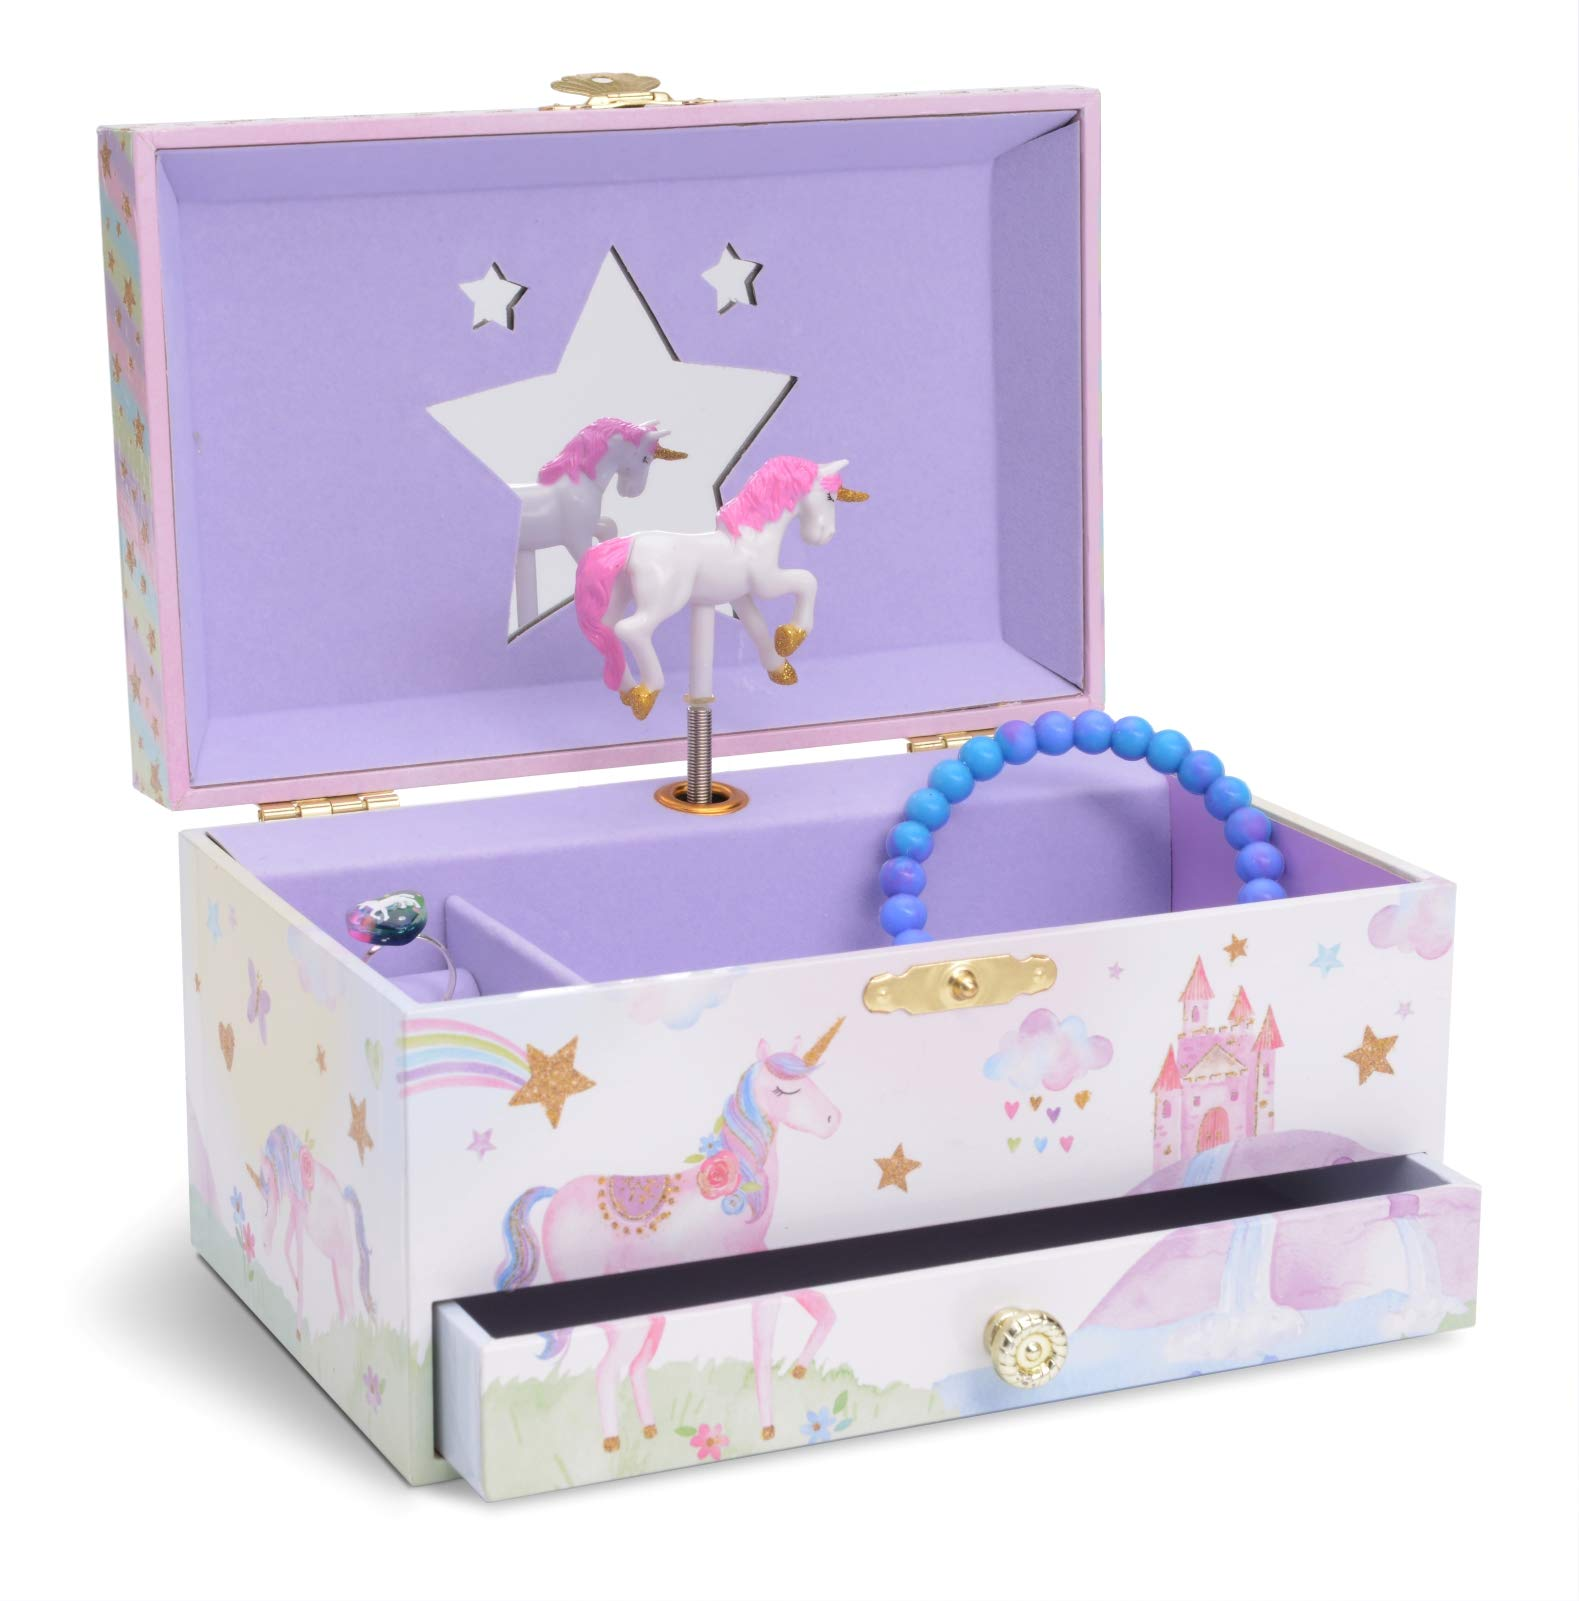 Jewelkeeper Girl's Musical Jewelry Storage Box with Pullout Drawer, Glitter Rainbow and Stars Unicorn Design, The Unicorn Tune